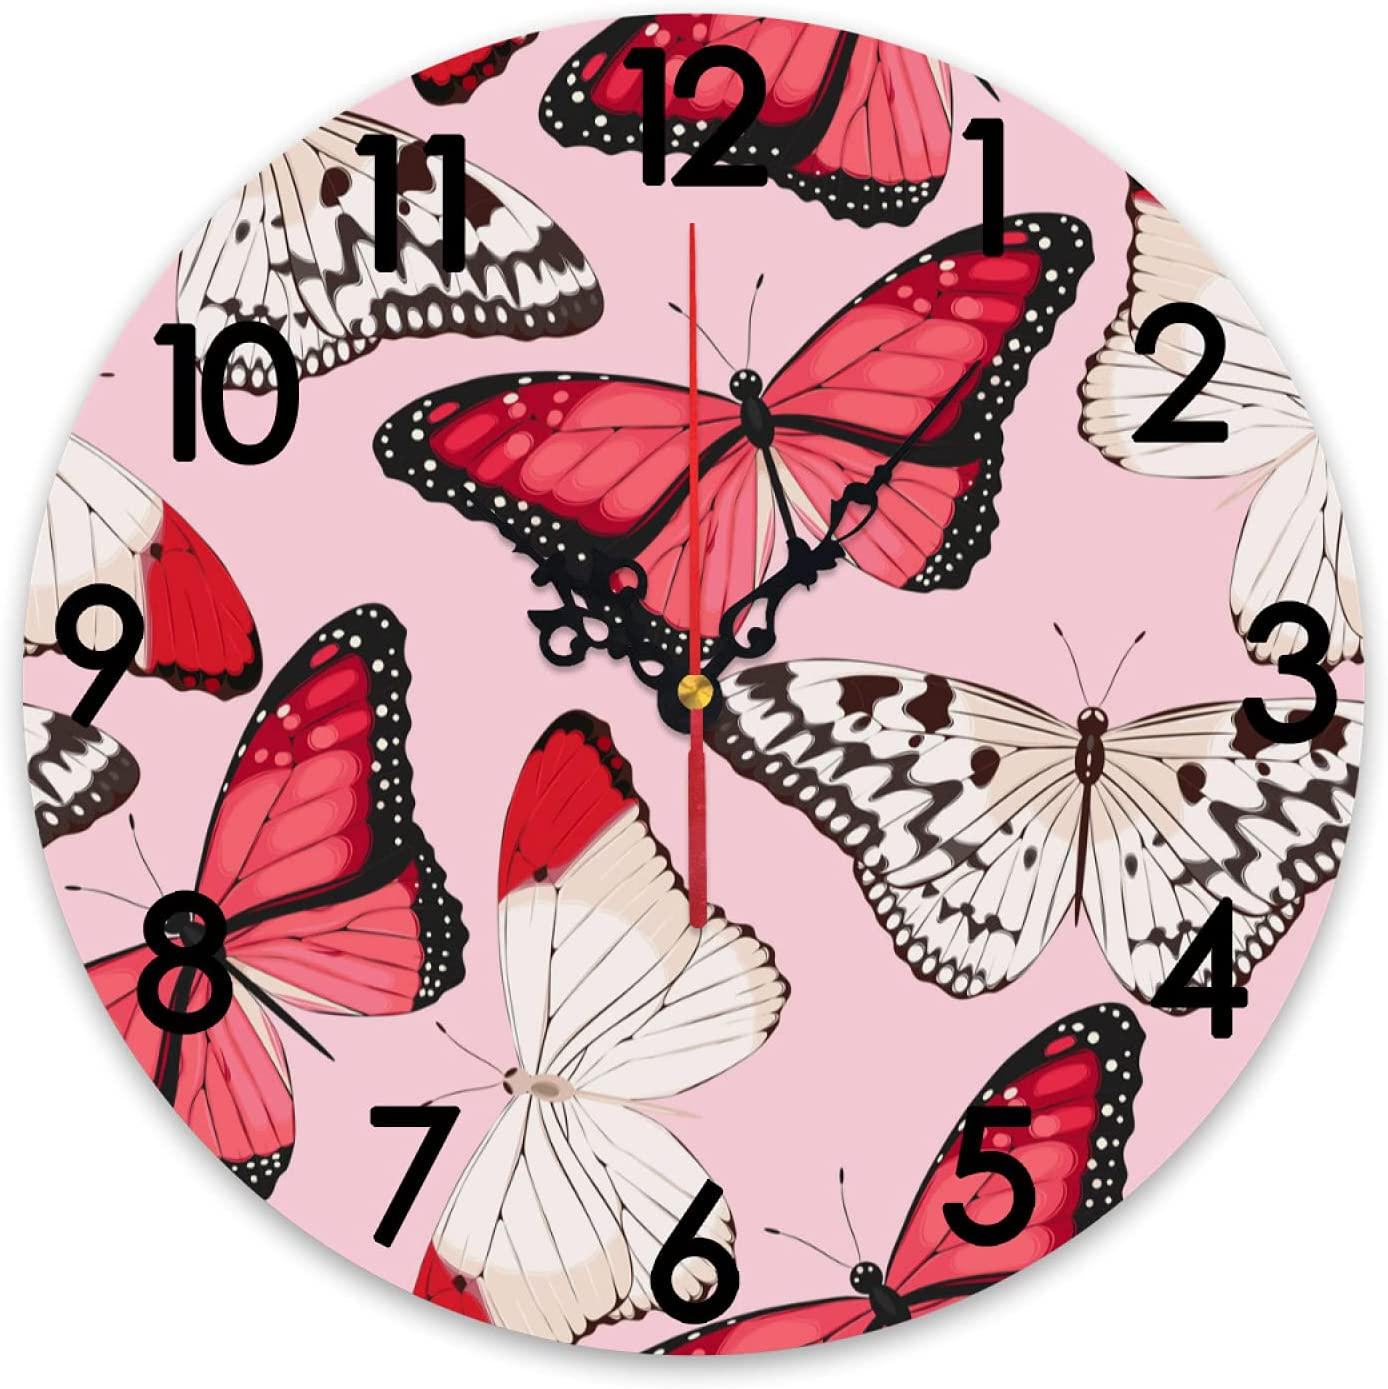 ZXZNC Wall Clock Large Ranking TOP20 Coral Butterflies Miami Mall Fashion Non Tickin Pink